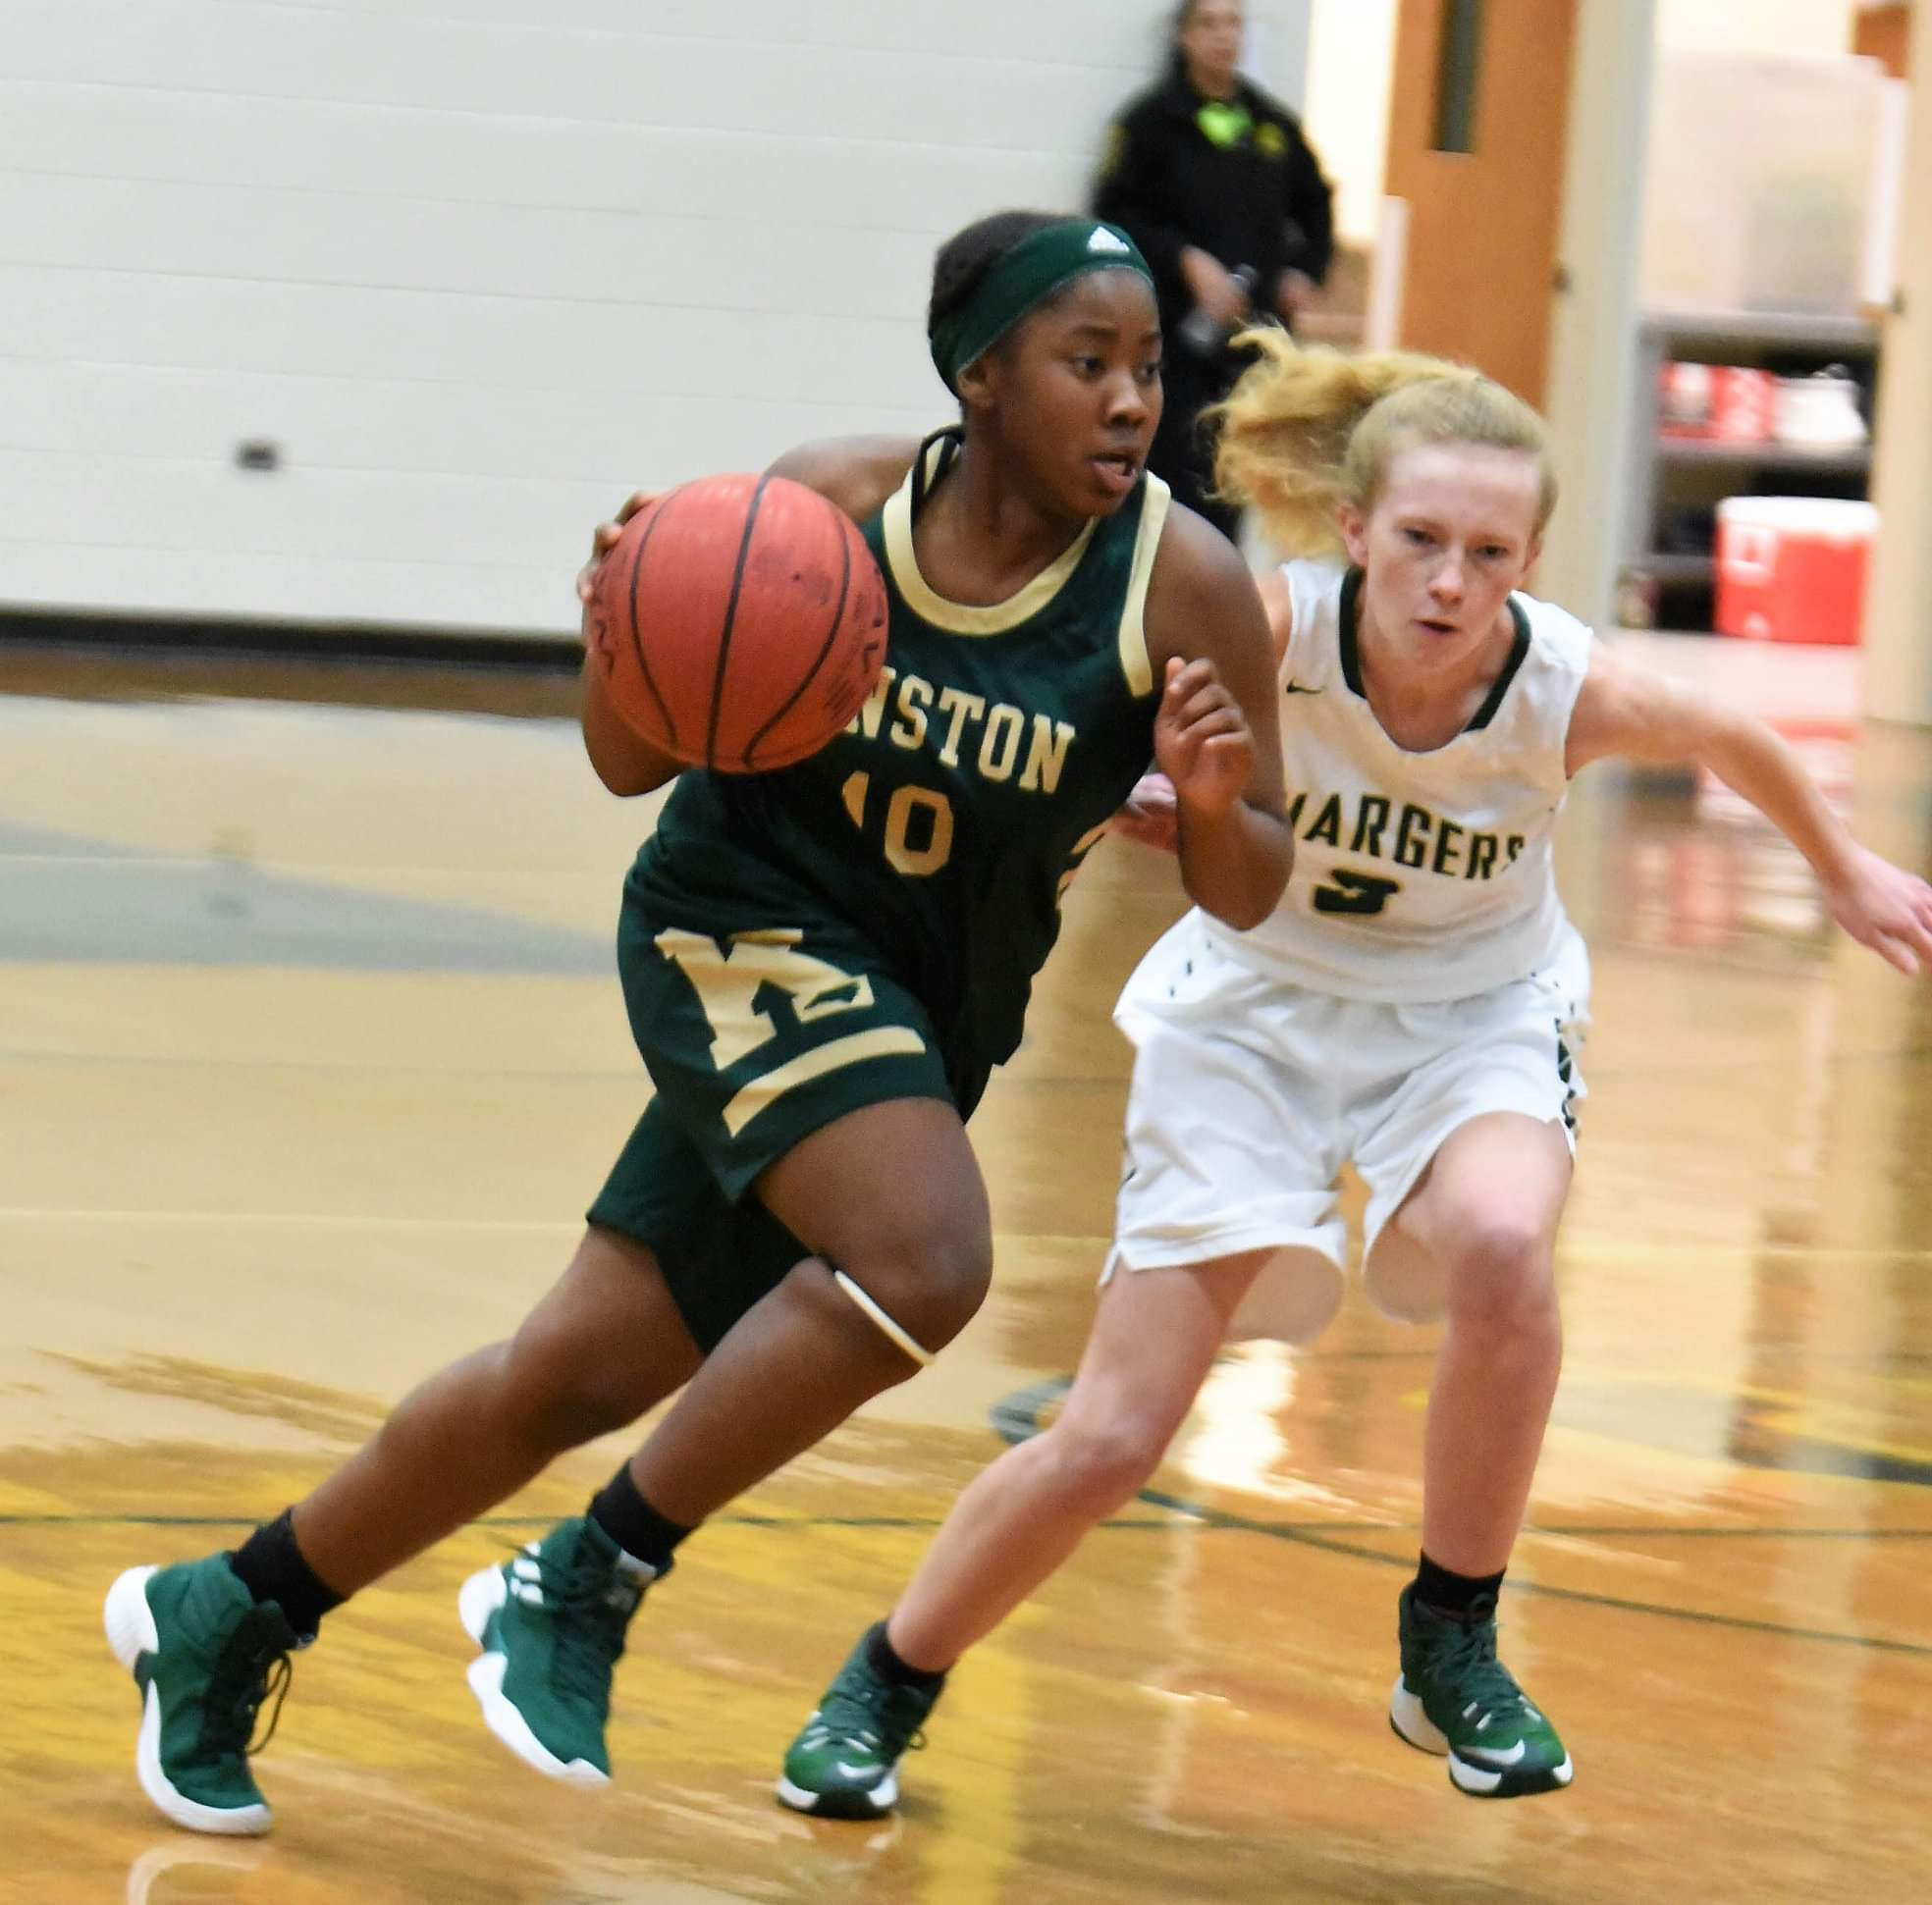 """Kinston's Samantha Lee looks to drive past Ayden-Grifton's Kristen Hardee in Tuesday's contest. Photo by William """"Bud"""" Hardy / Neuse News"""